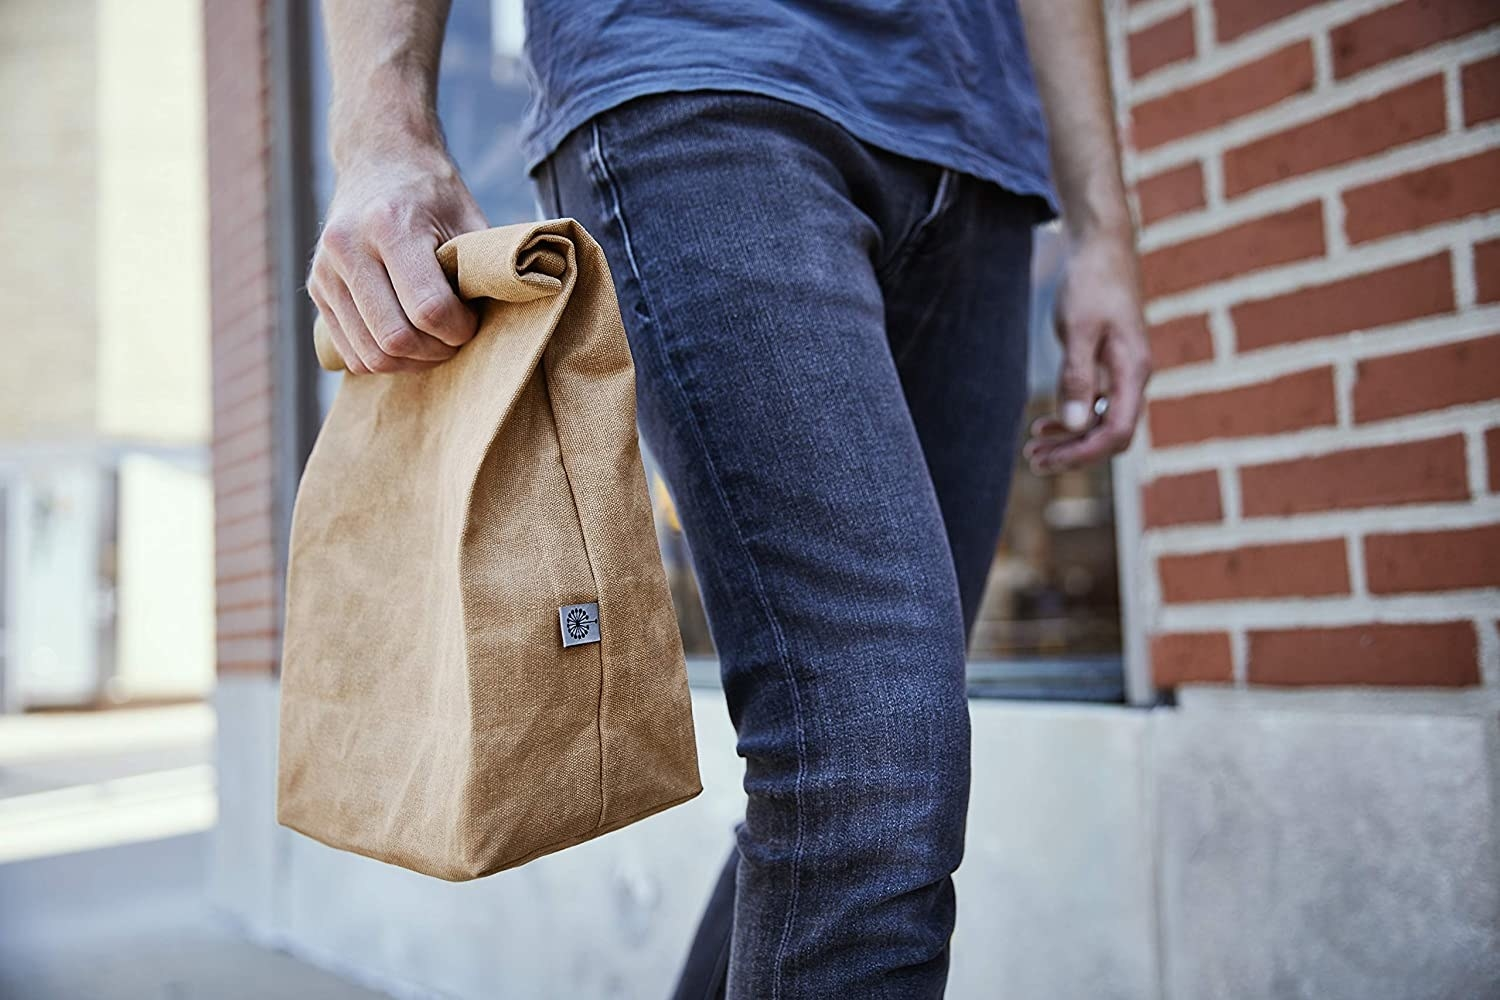 A model carrying a brown canvas lunch bag